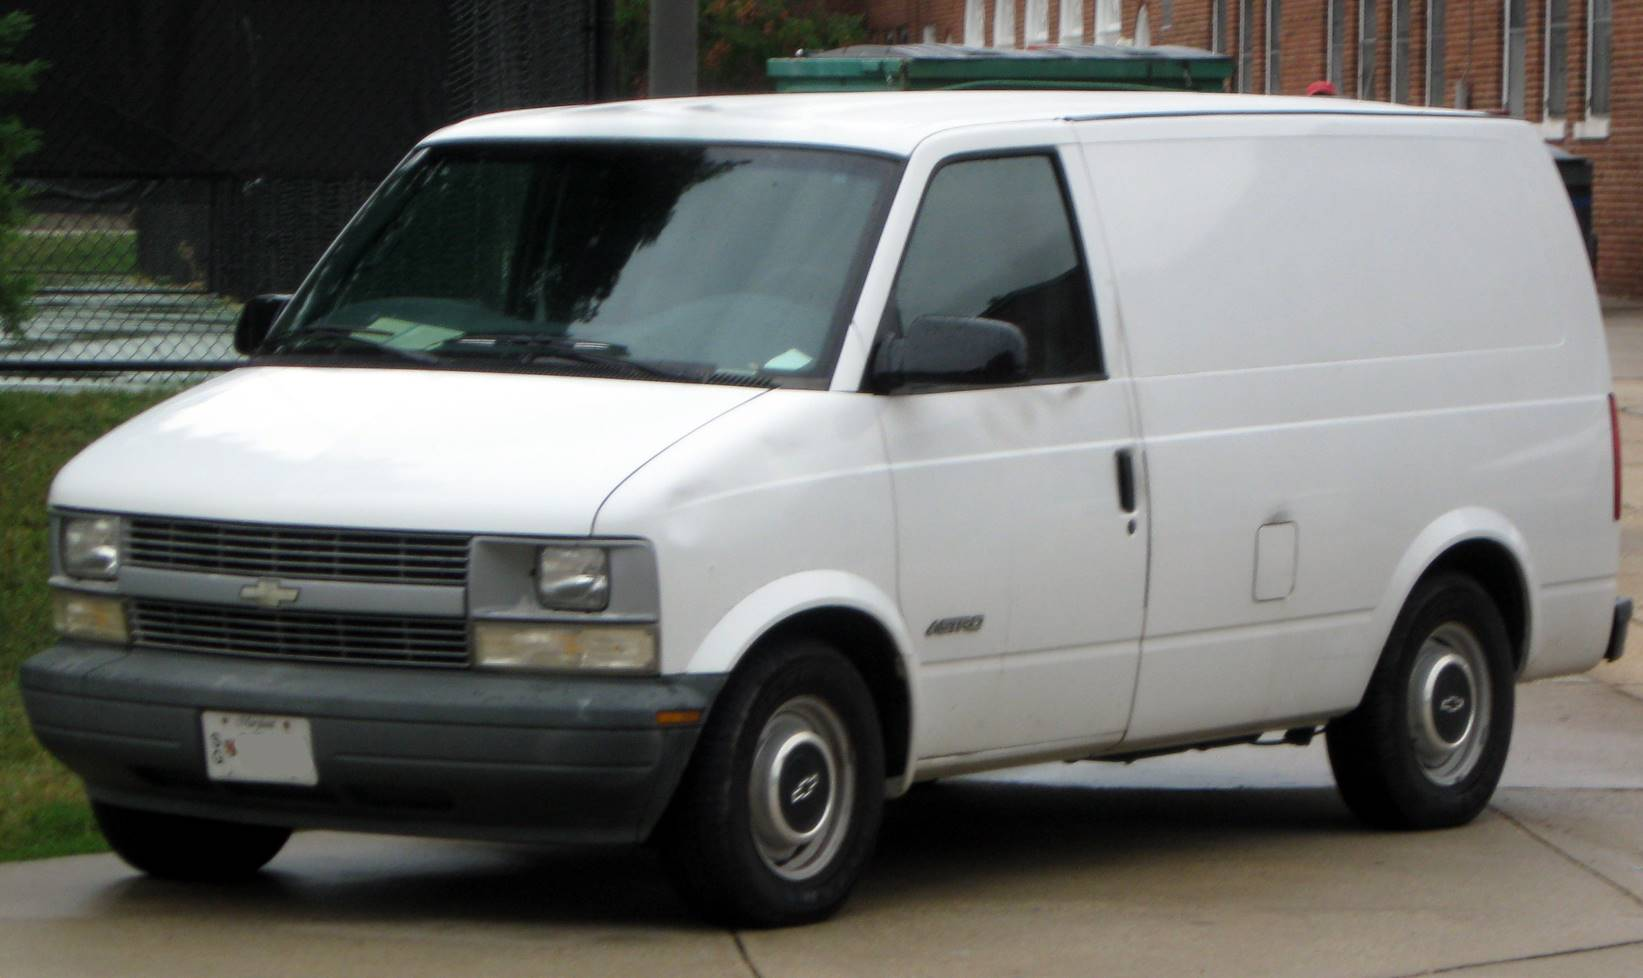 1999 chevrolet astro base all wheel drive cargo van 4 spd auto w od wheel drive cargo van 4 spd auto w od